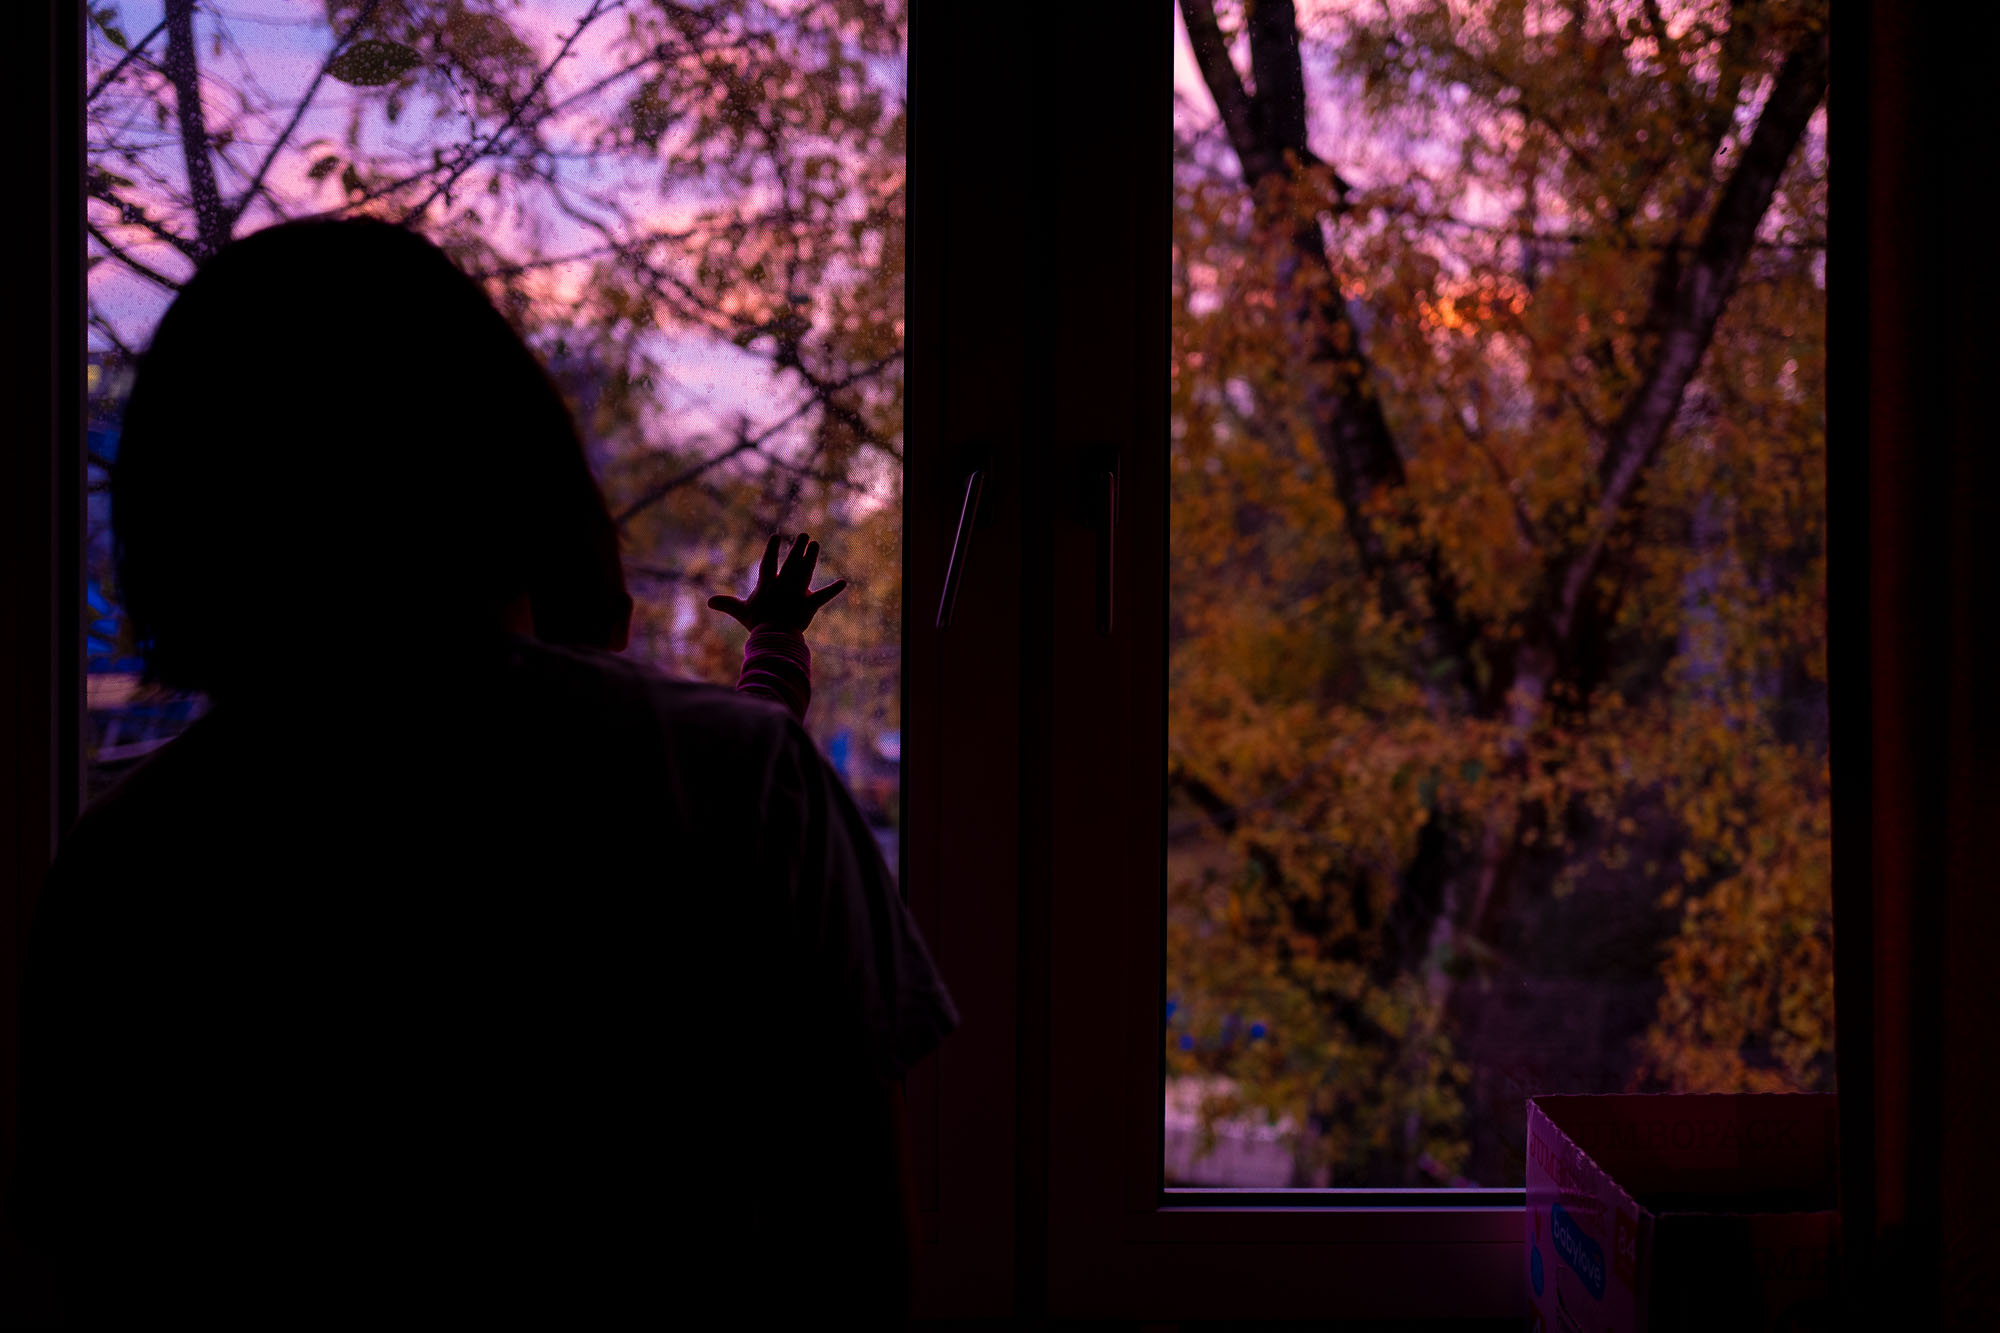 Ulya and Suvi looking out the window at a colorful sunrise